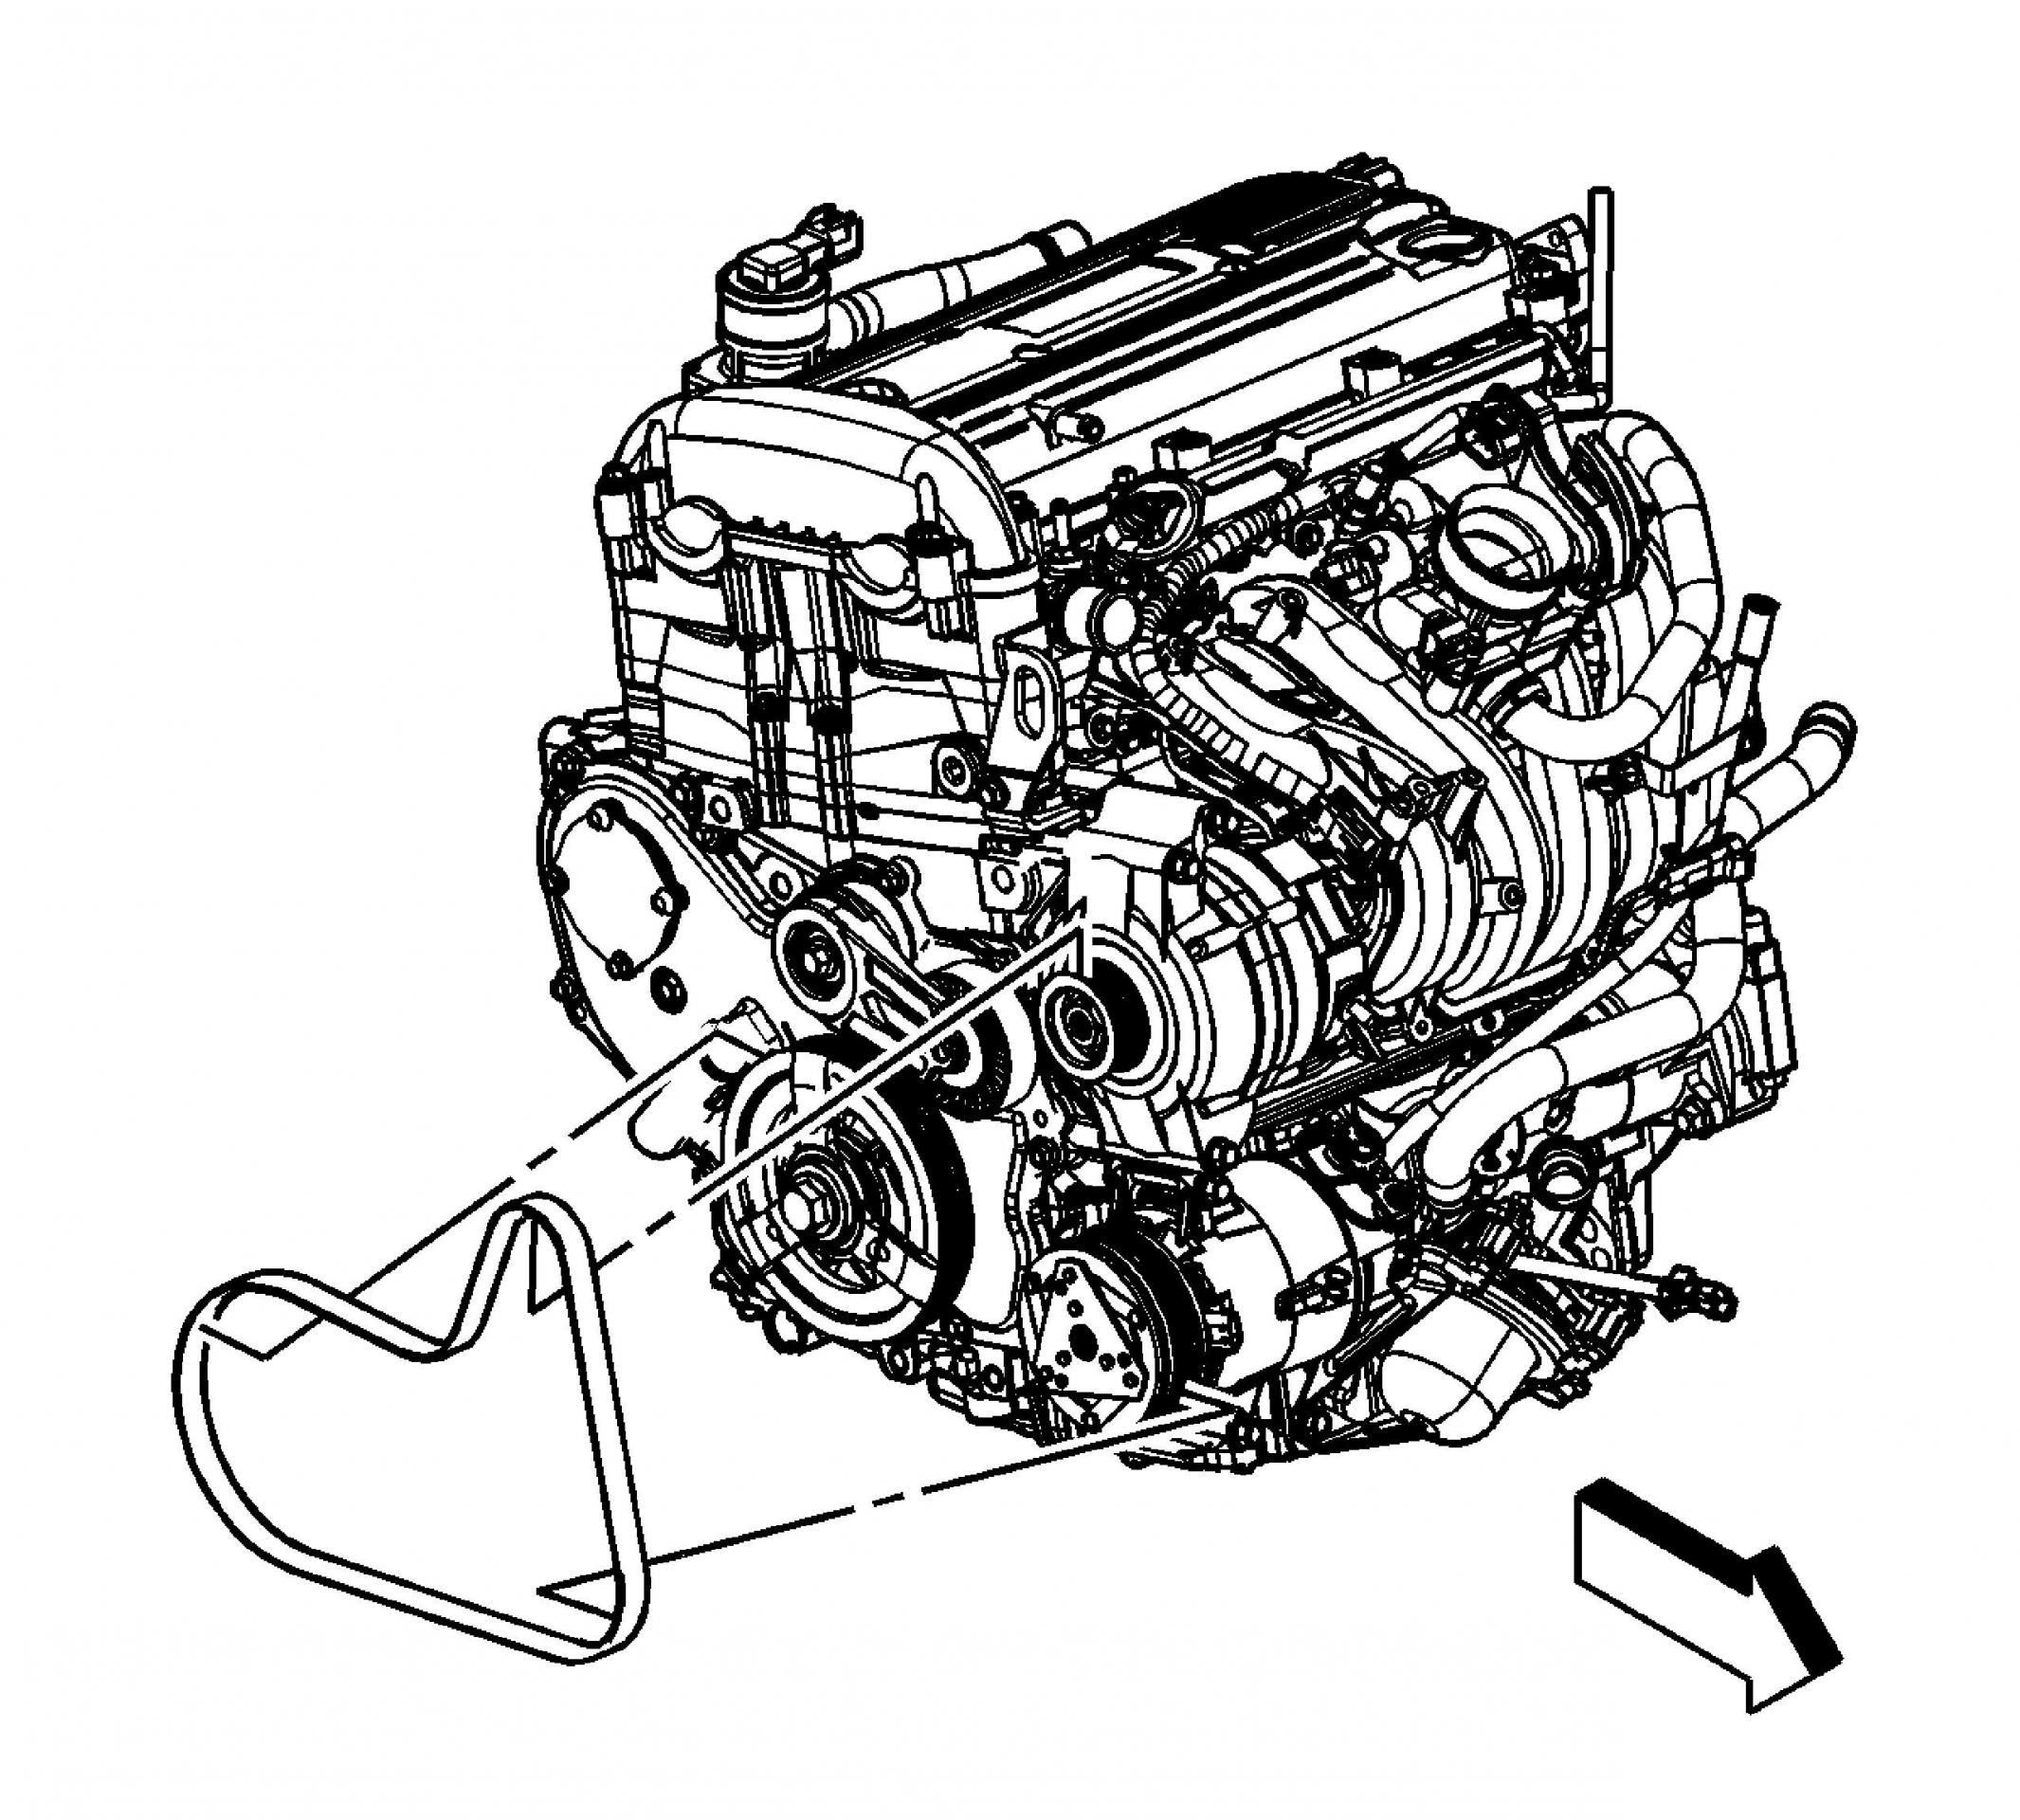 2005 chevy equinox egr wiring diagram honda crx stereo engine great installation of 2010 diagrams rh 51 virtual reality brillen test de